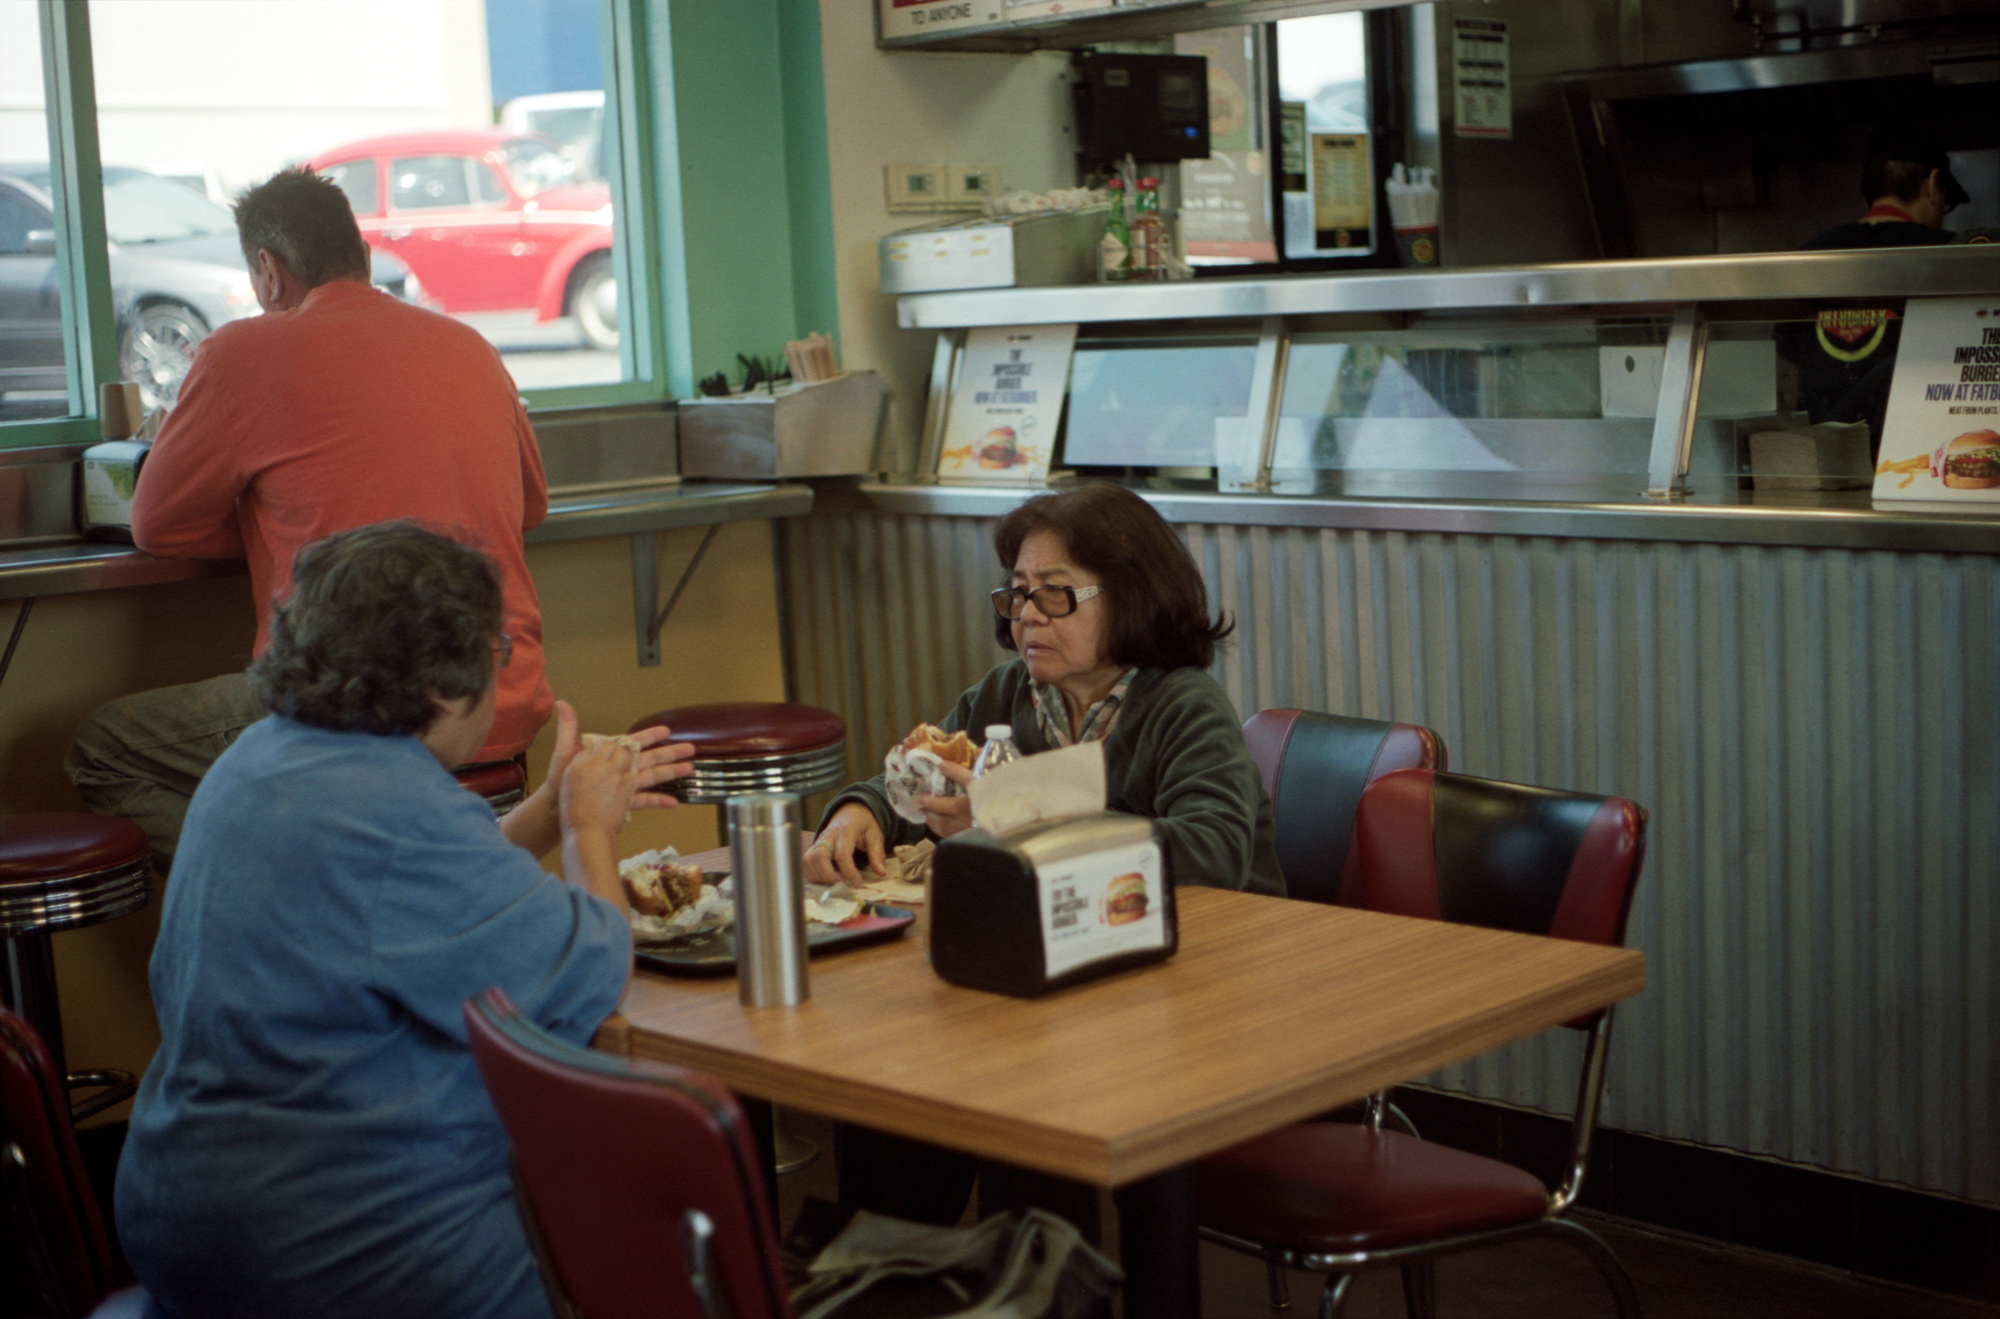 Diner Date,  Sunset Blvd, Los Angeles, Omg Your English, Photography by Ioannis Koussertari